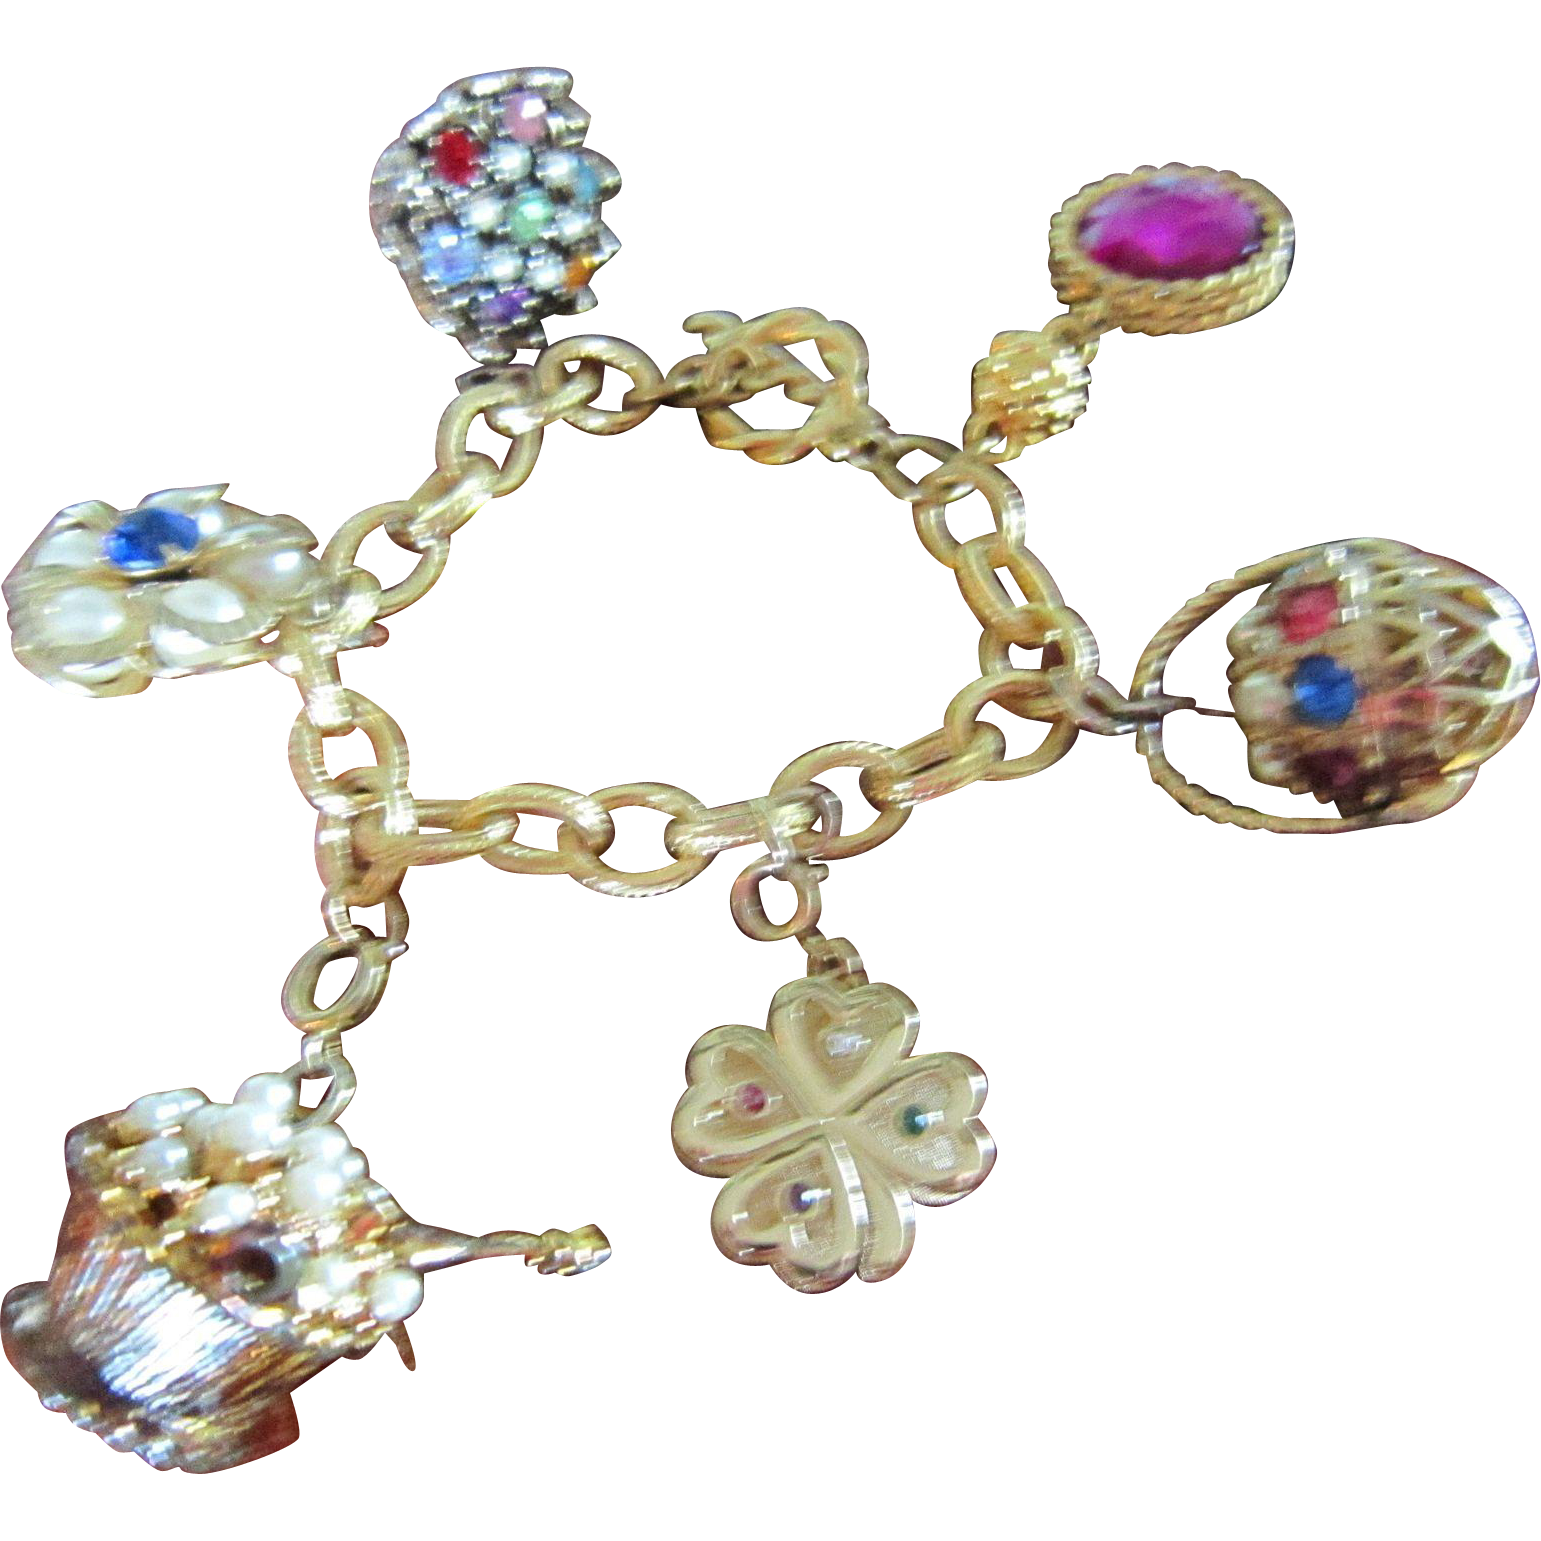 Gold Tone Charm Bracelet and Charms with Rhinestones and Faux Pearls